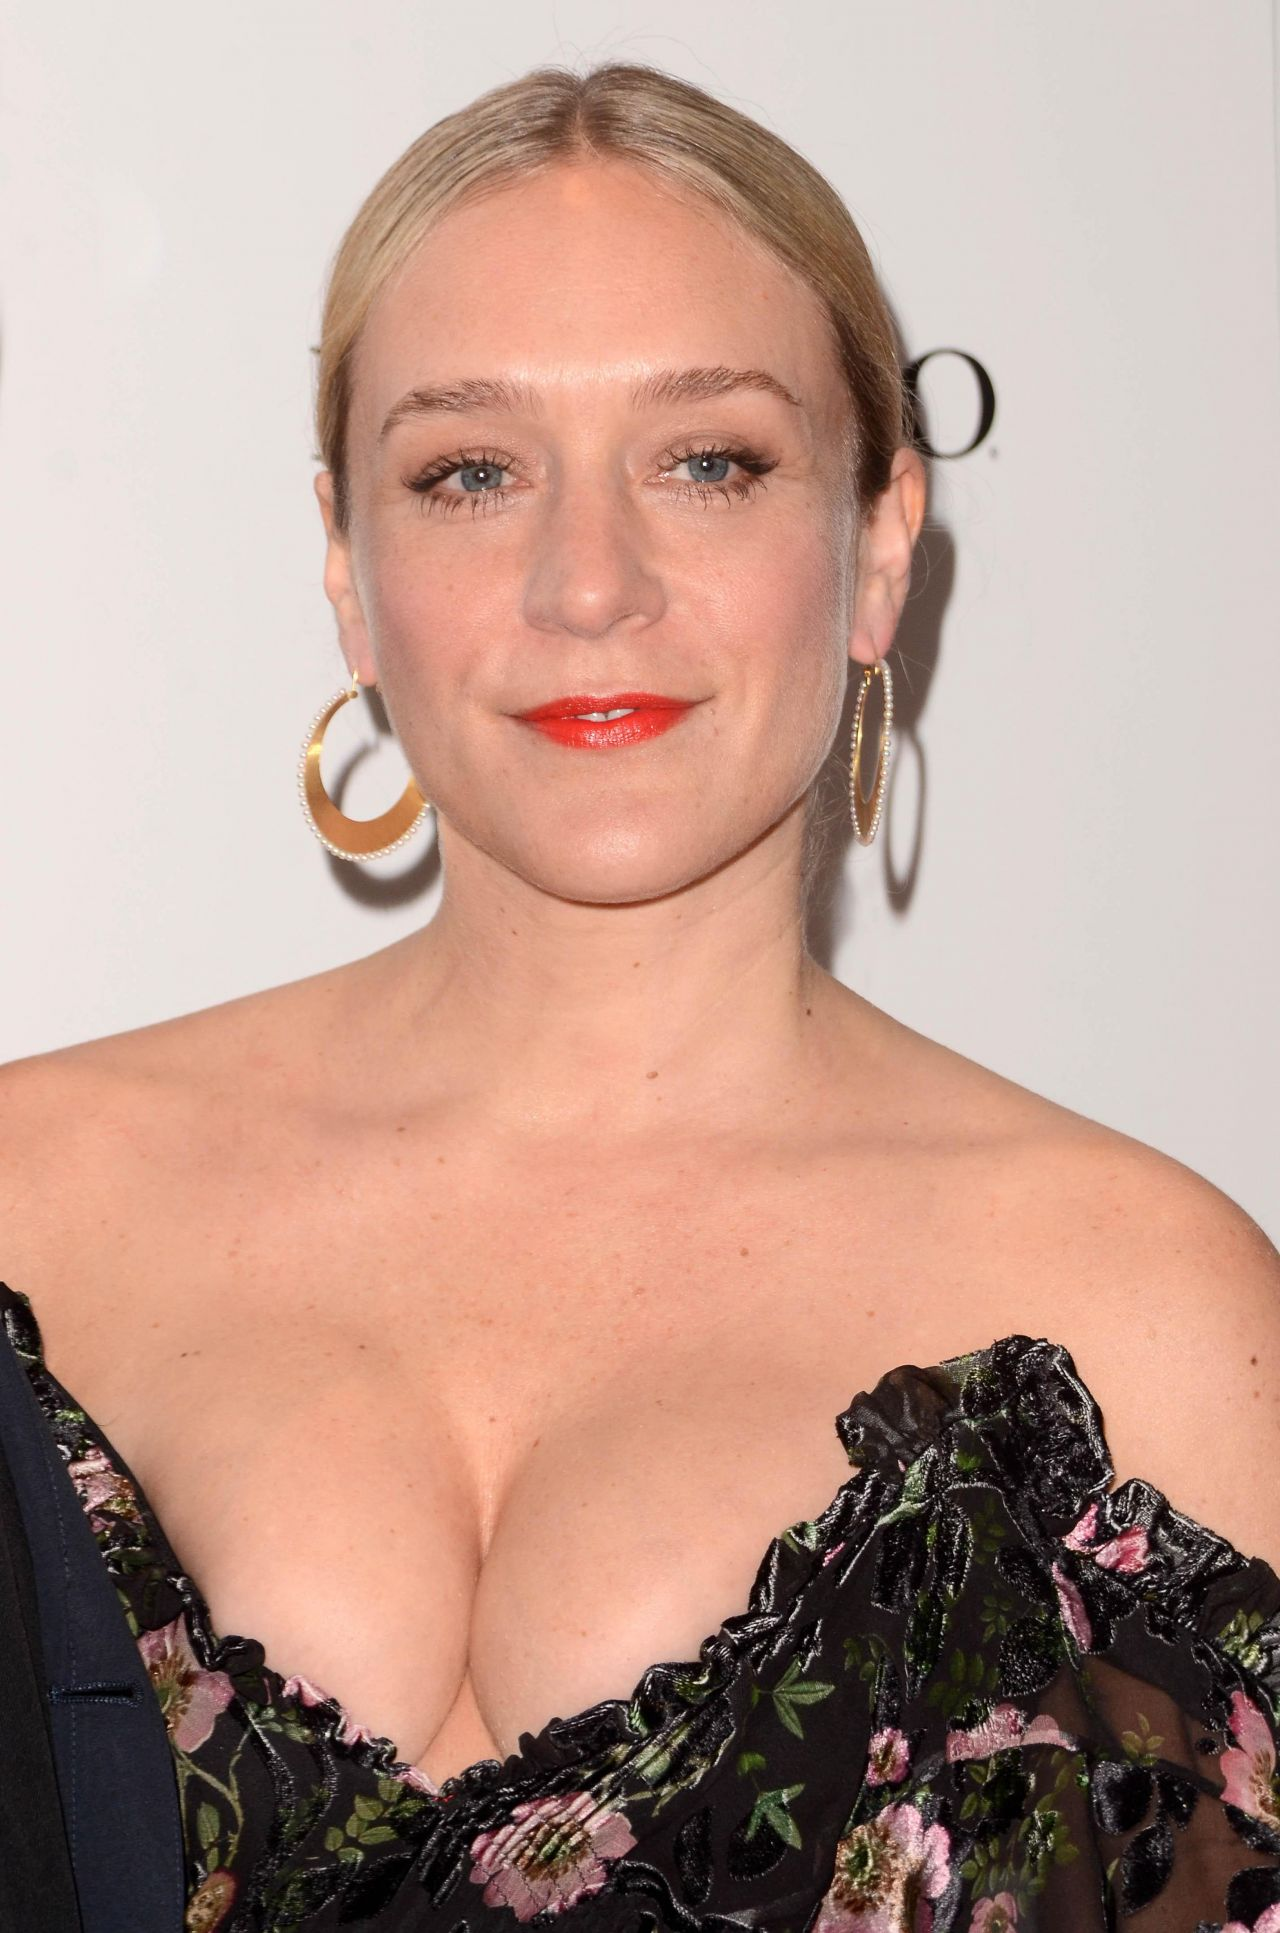 chloe sevigny quotthe dinnerquot movie premiere in los angeles